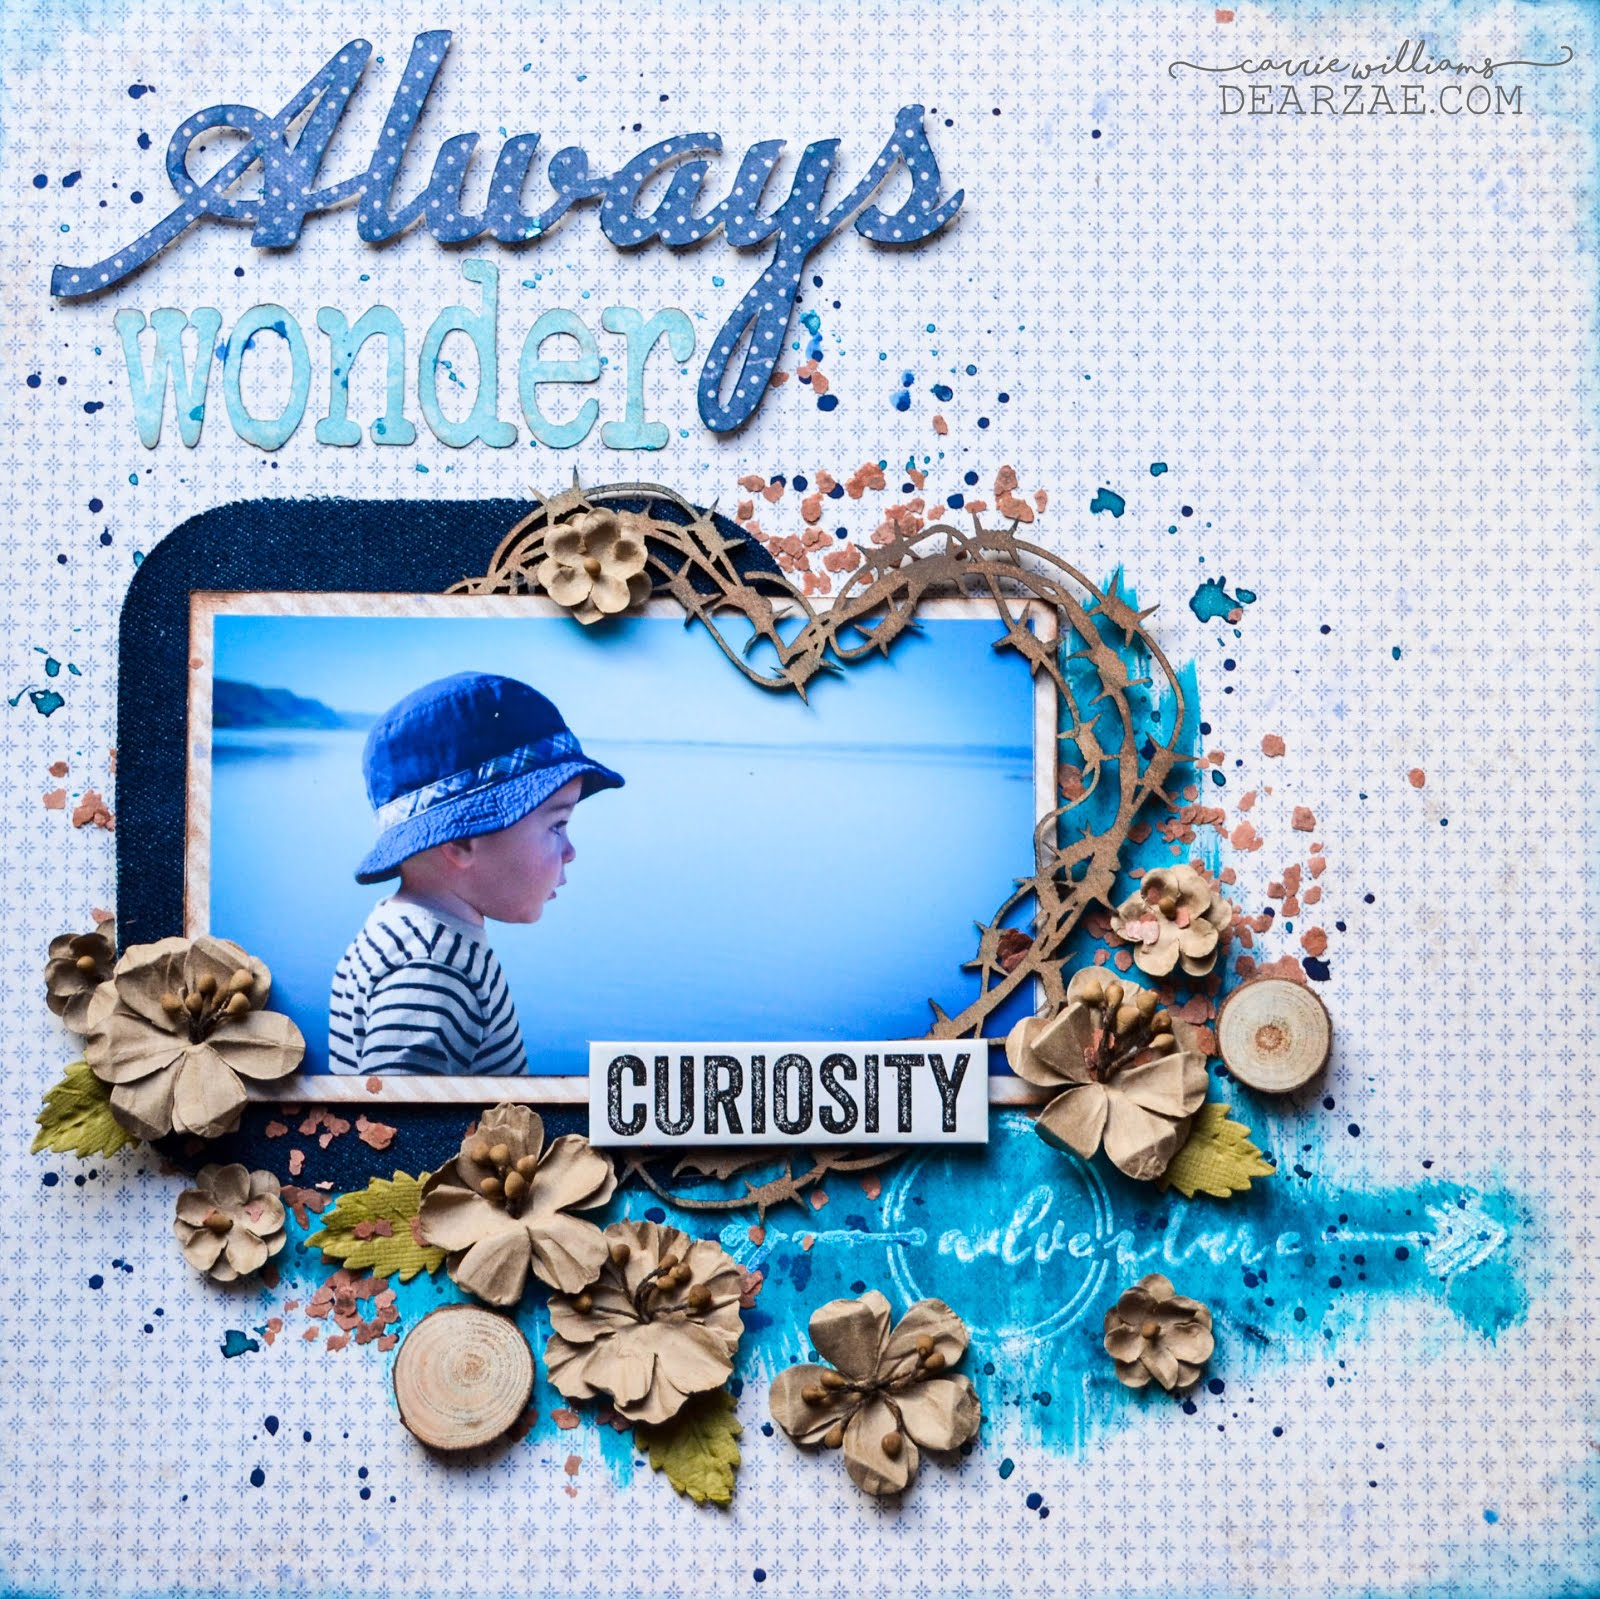 Mixed media scrapbook layout in blue and kraft linen brown neutral with barbed wire heart chipboard frame. Featuring Maja Denim and Friends papers, 49&Market flowers, Tim Holtz phrase chips and wood slices with mica flakes and Lindy's sprays and Kaisercraft Kaisermist